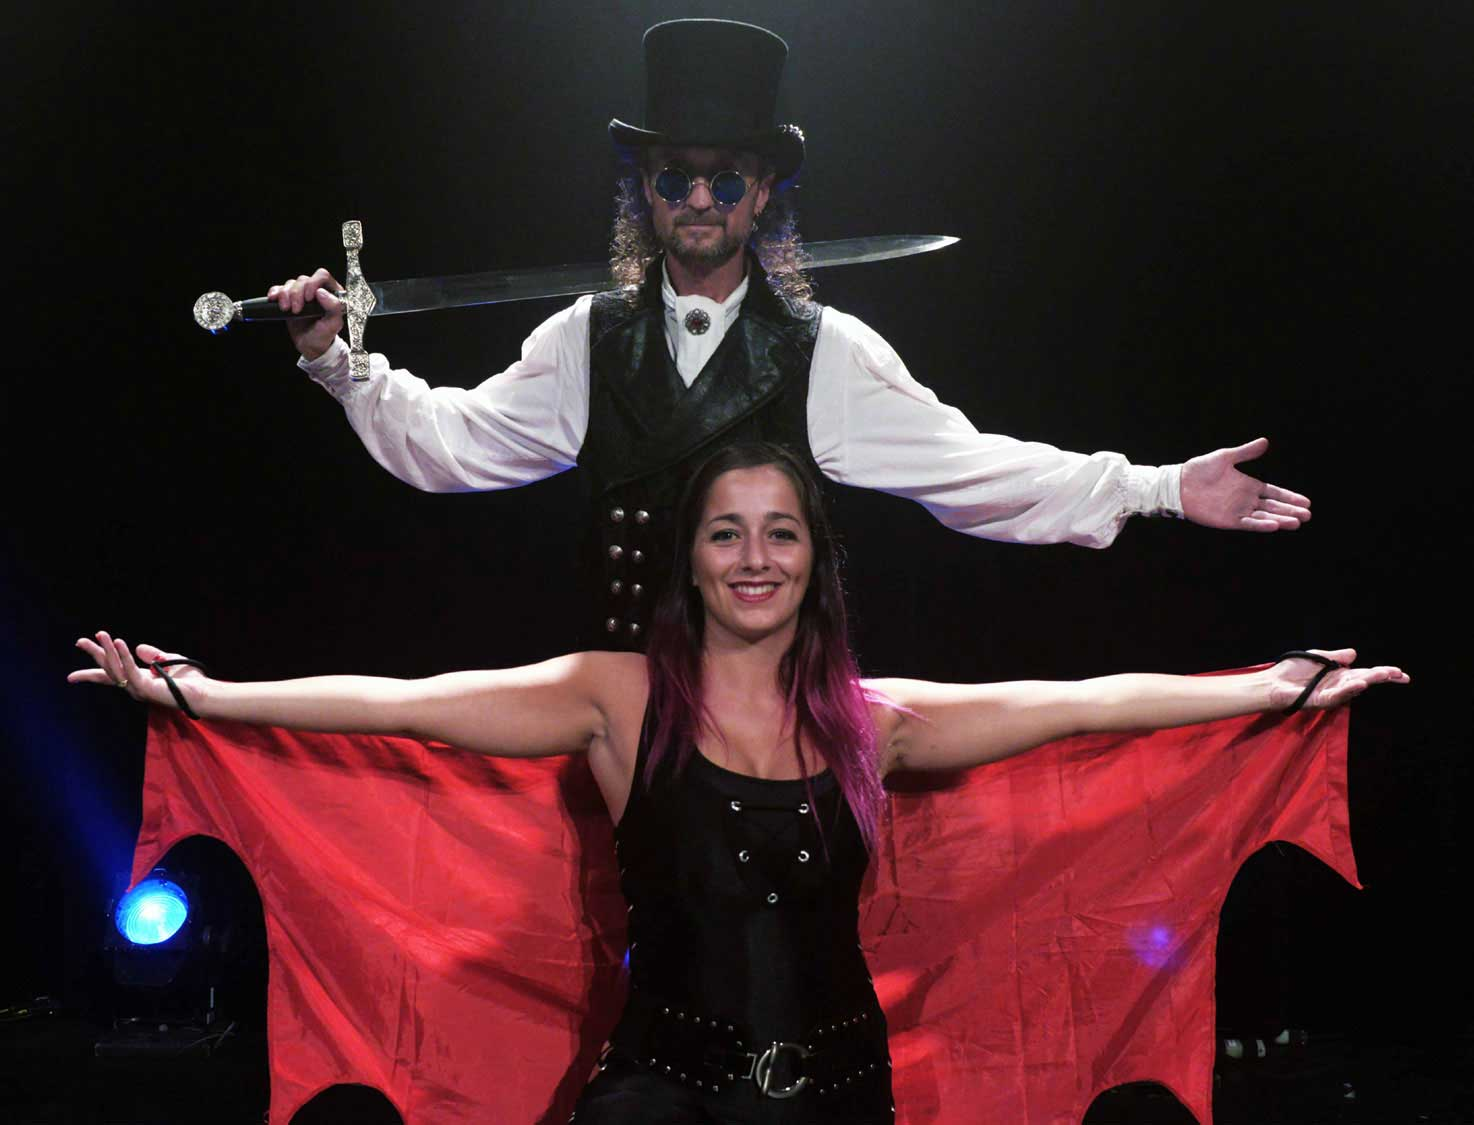 Loran the illusionist performing a magic show on stage with Kristel